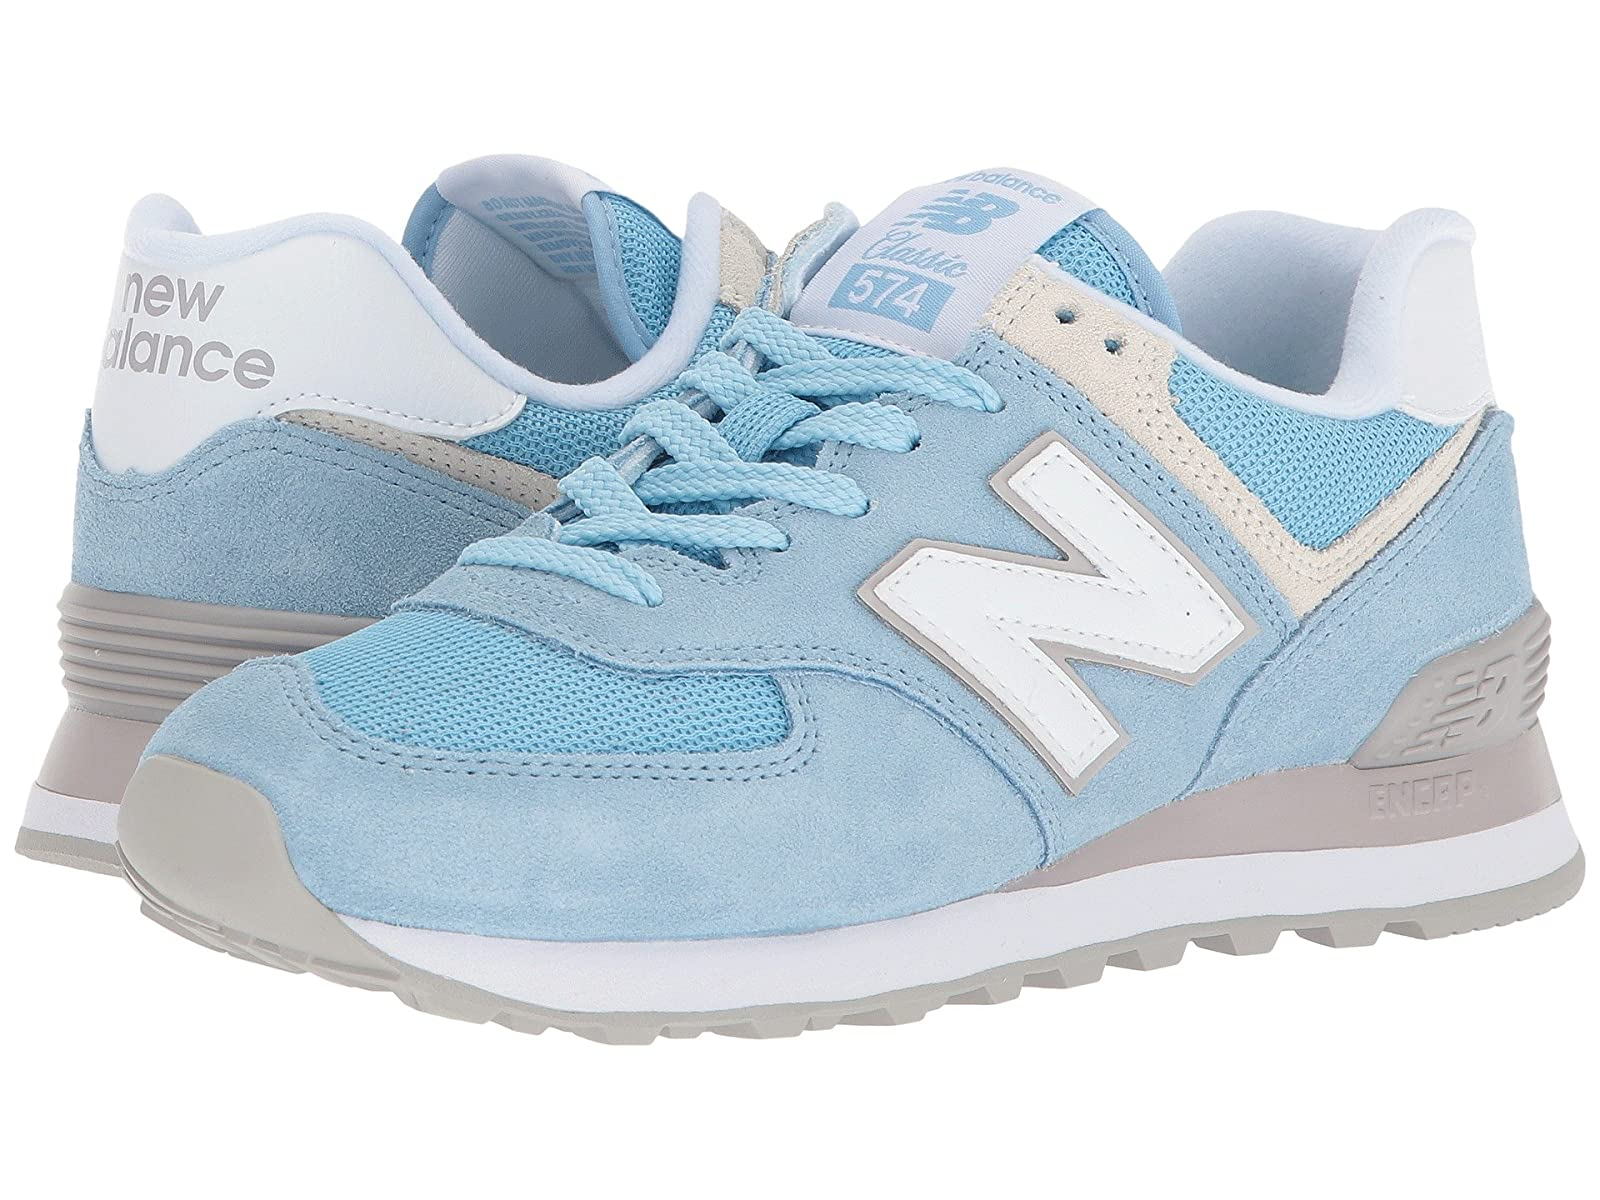 New Balance Classics WL574v2Cheap and distinctive eye-catching shoes